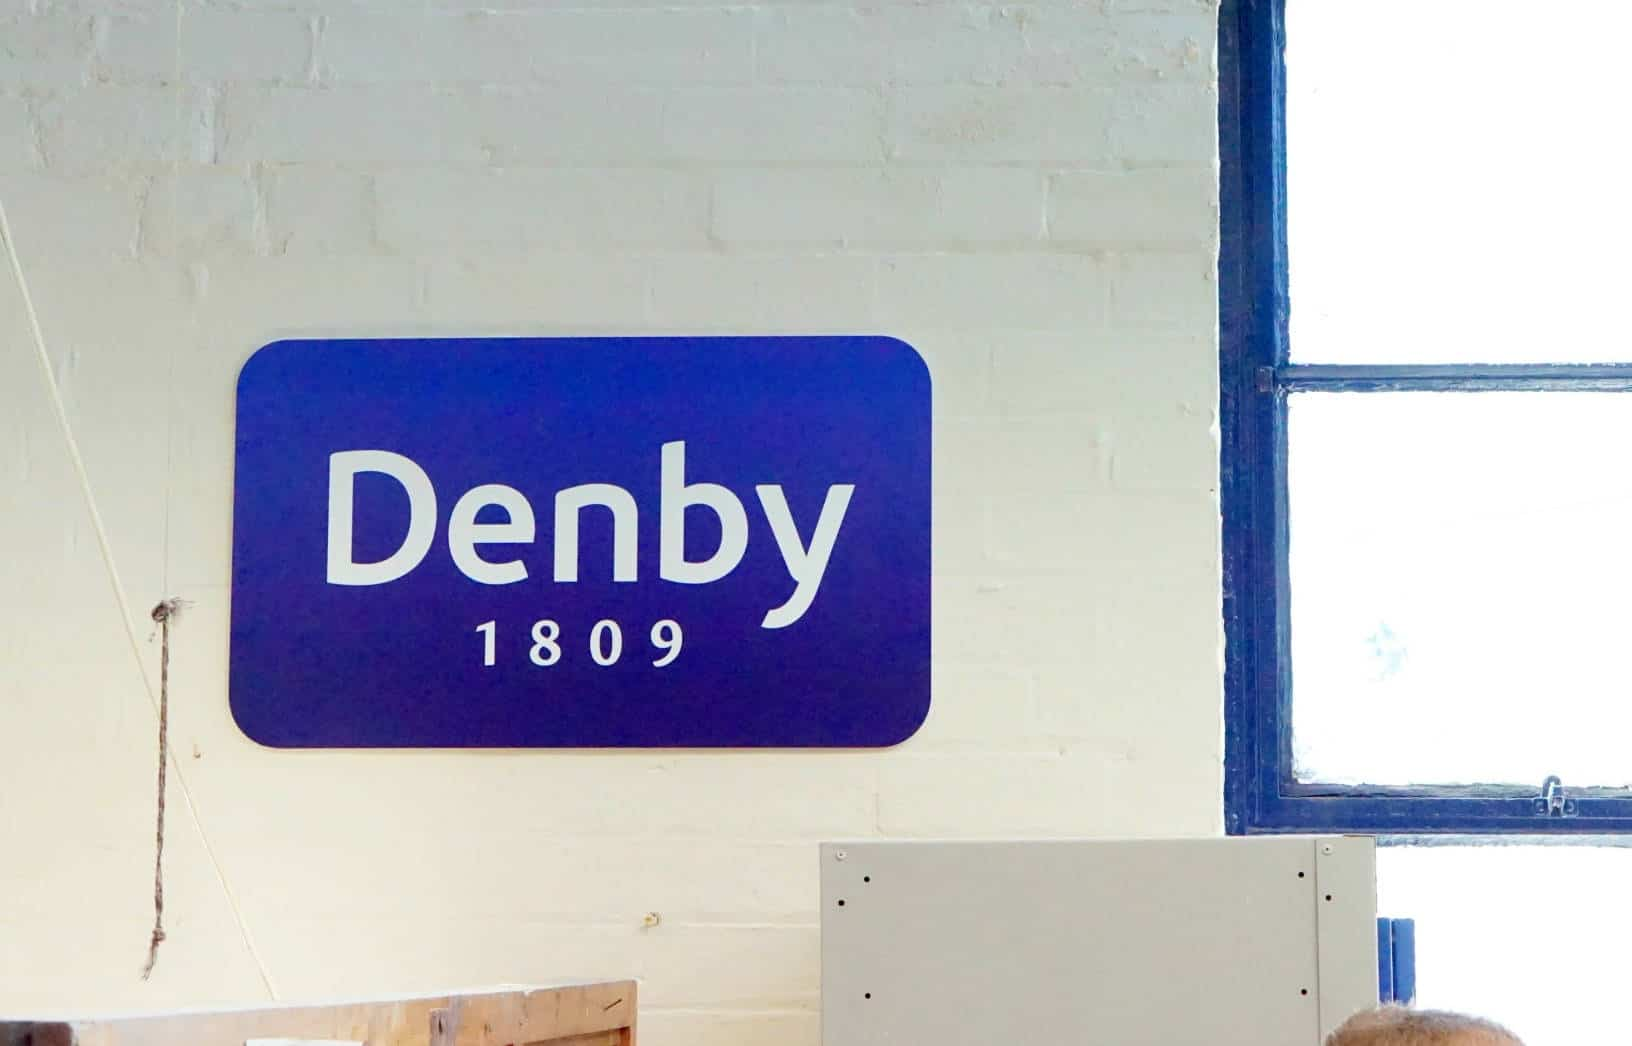 From Clay To Cup, A Day With Denby, inside the Debby Factory www.extraordinarychaos.com